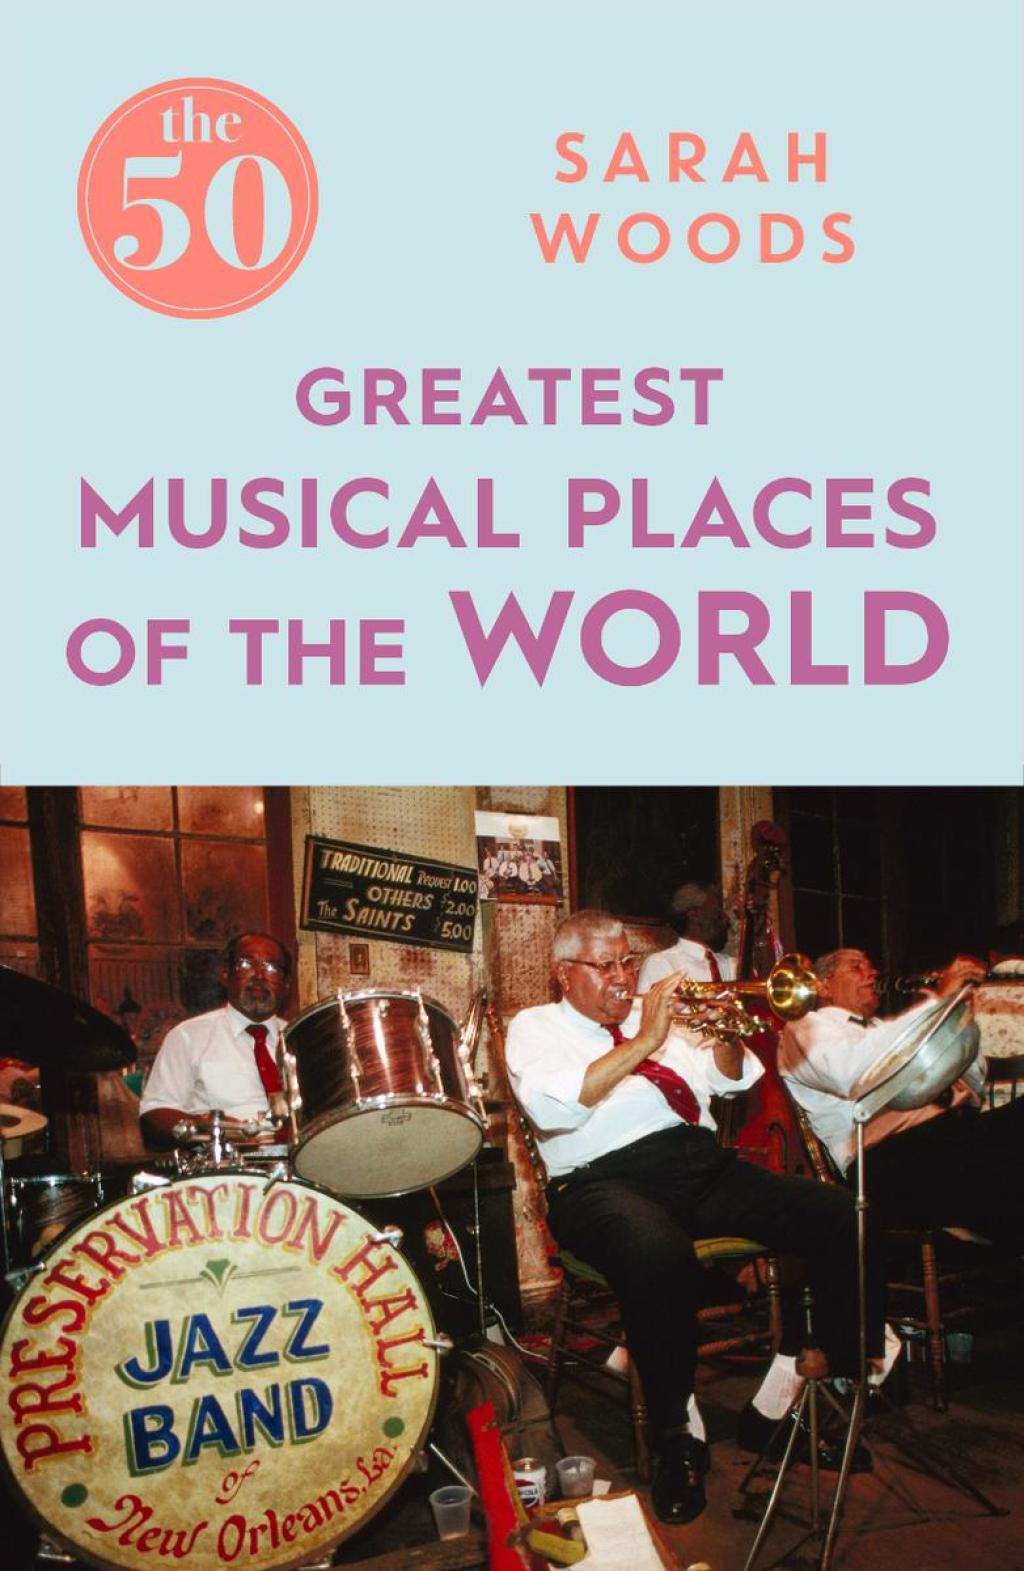 The 50 Greatest Musical Places (ebook) eBooks